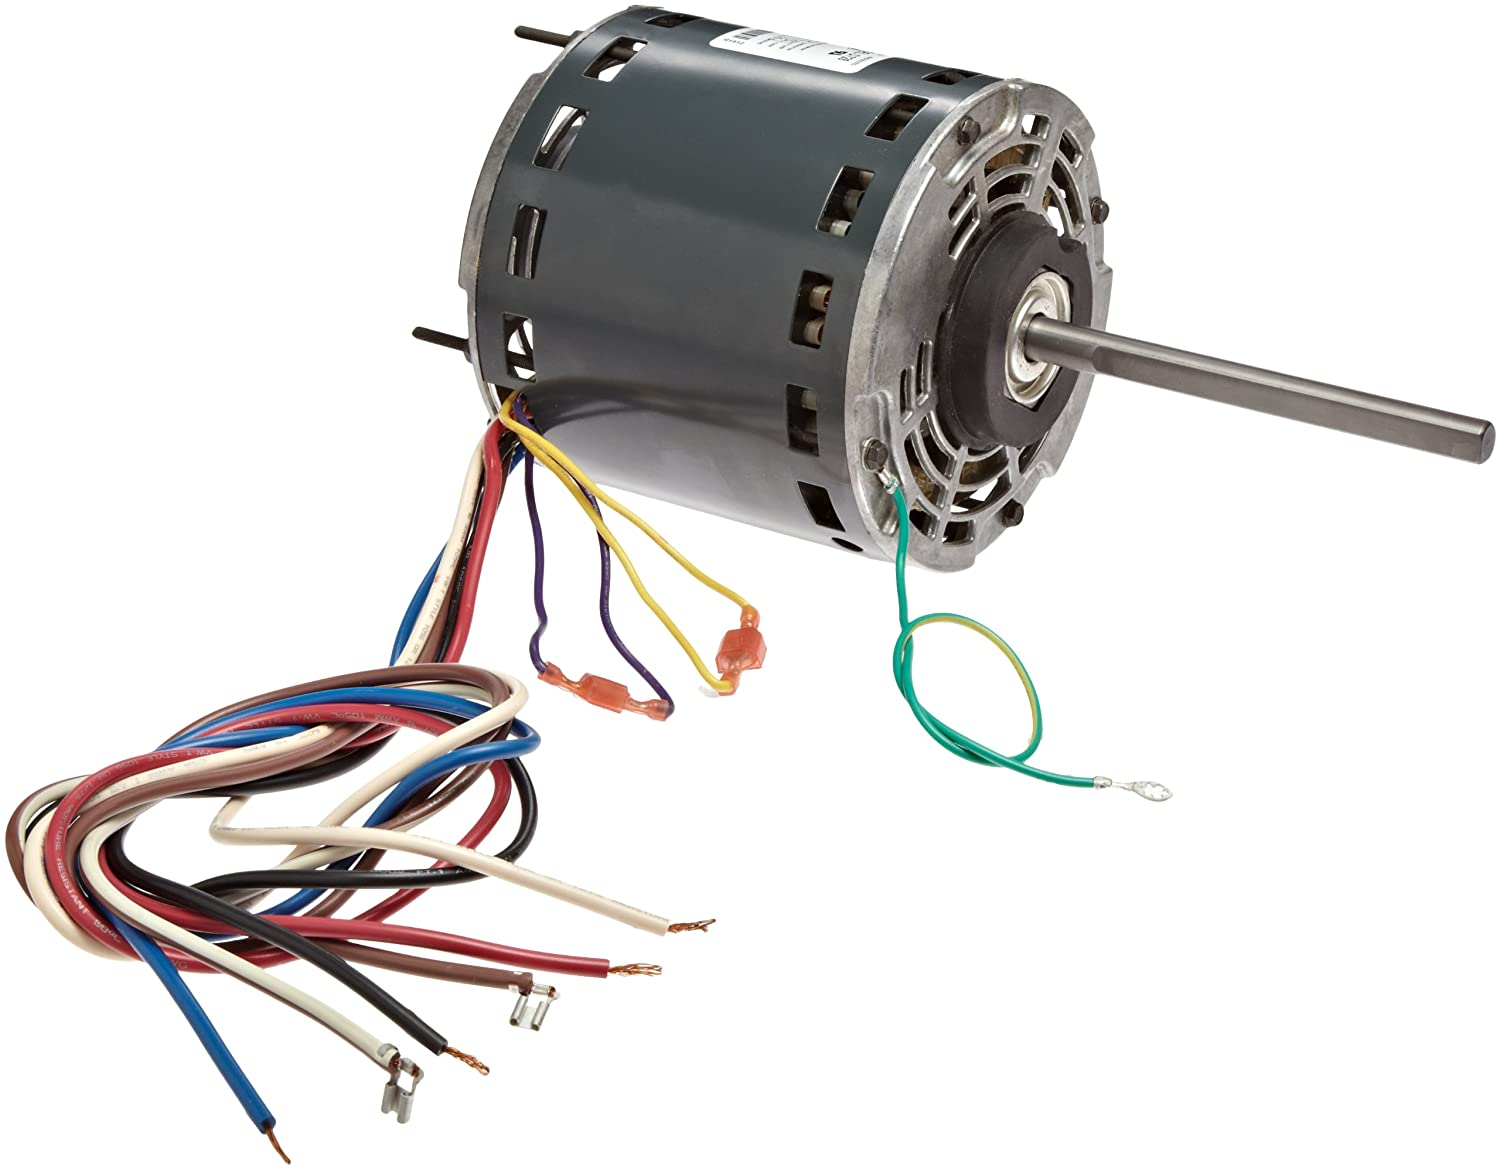 "Fasco D728 5.6"" Frame Open Ventilated Permanent Split Capacitor Direct Drive Blower Motor with Sleeve Bearing, 3/4-1/2-1/3HP, 1075rpm, 115V, 60Hz, 10.5-6.9-4.8 amps"